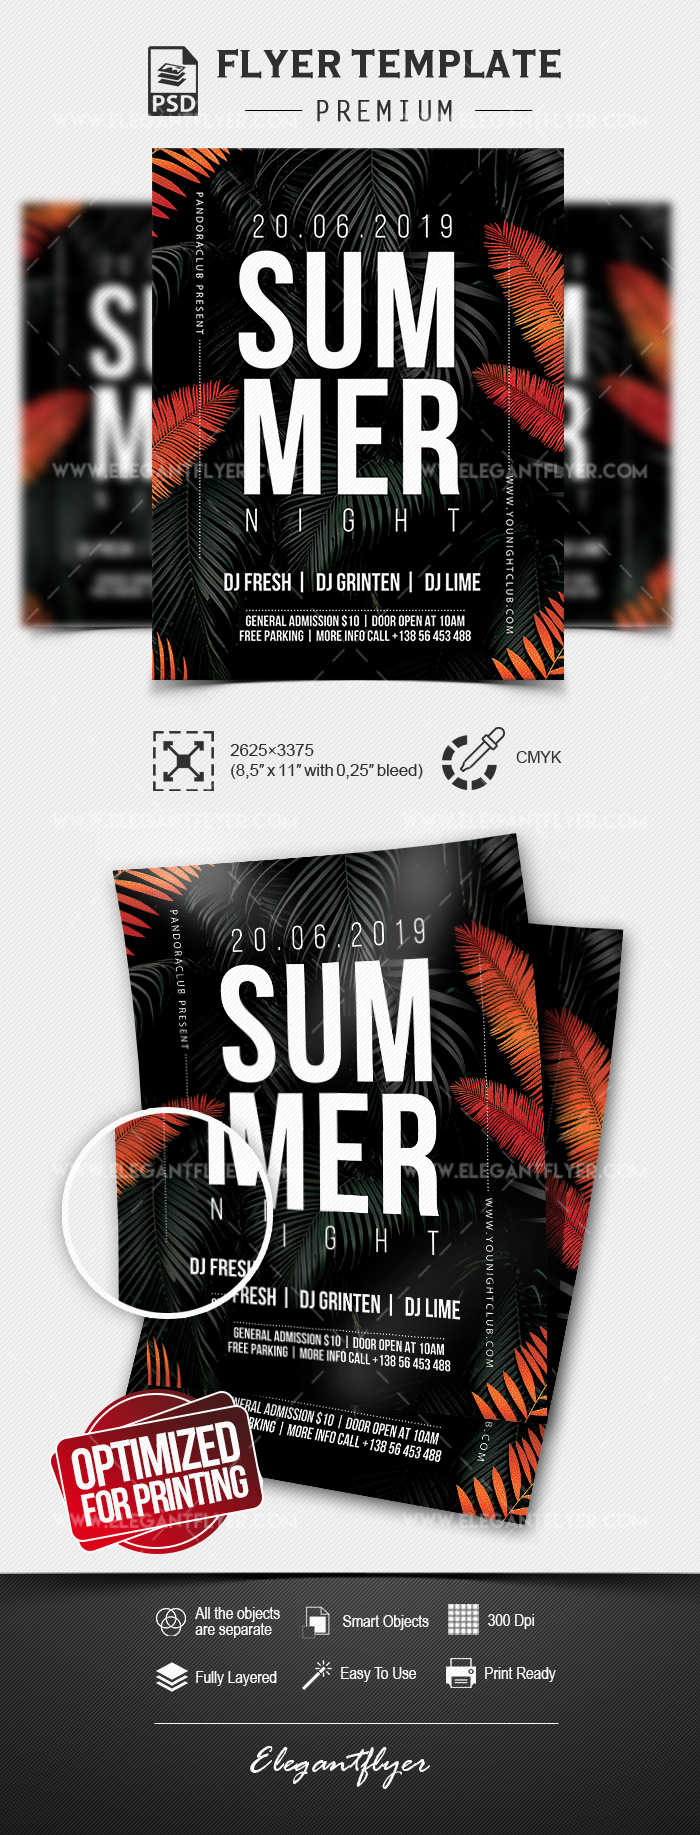 Summer Night – Premium PSD Flyer Template